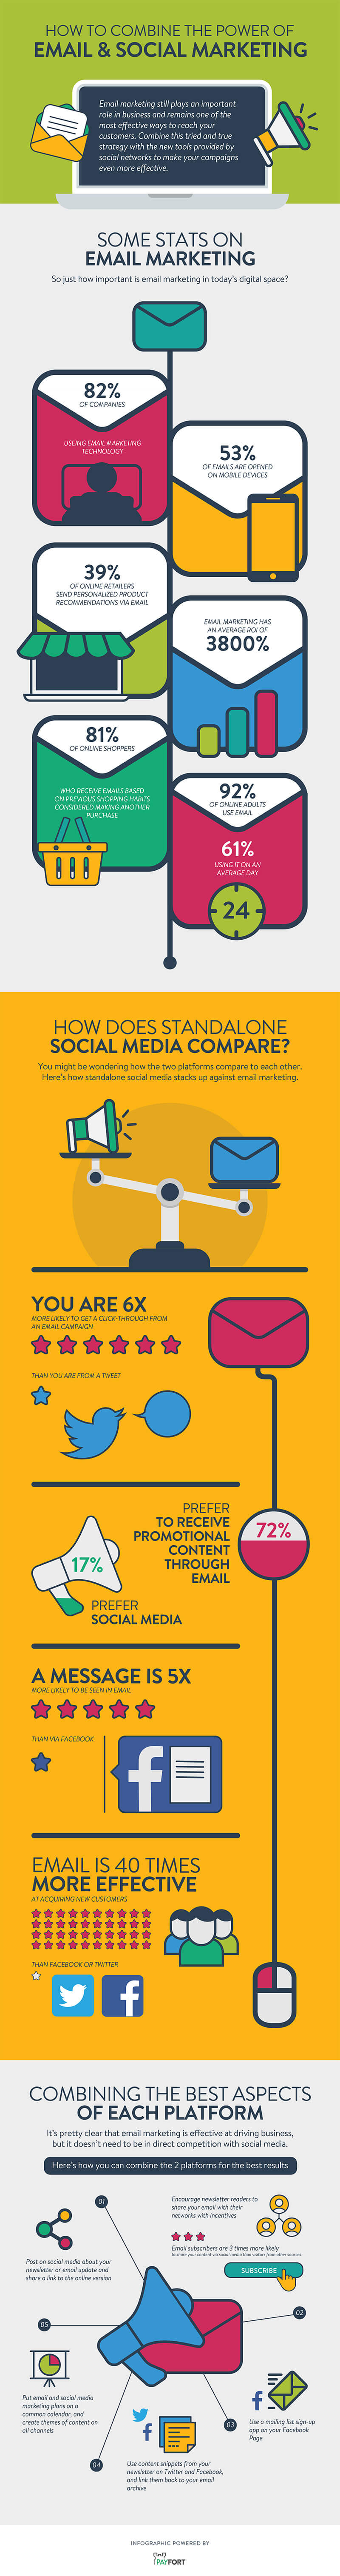 Email and Social Media Marketing Infographic